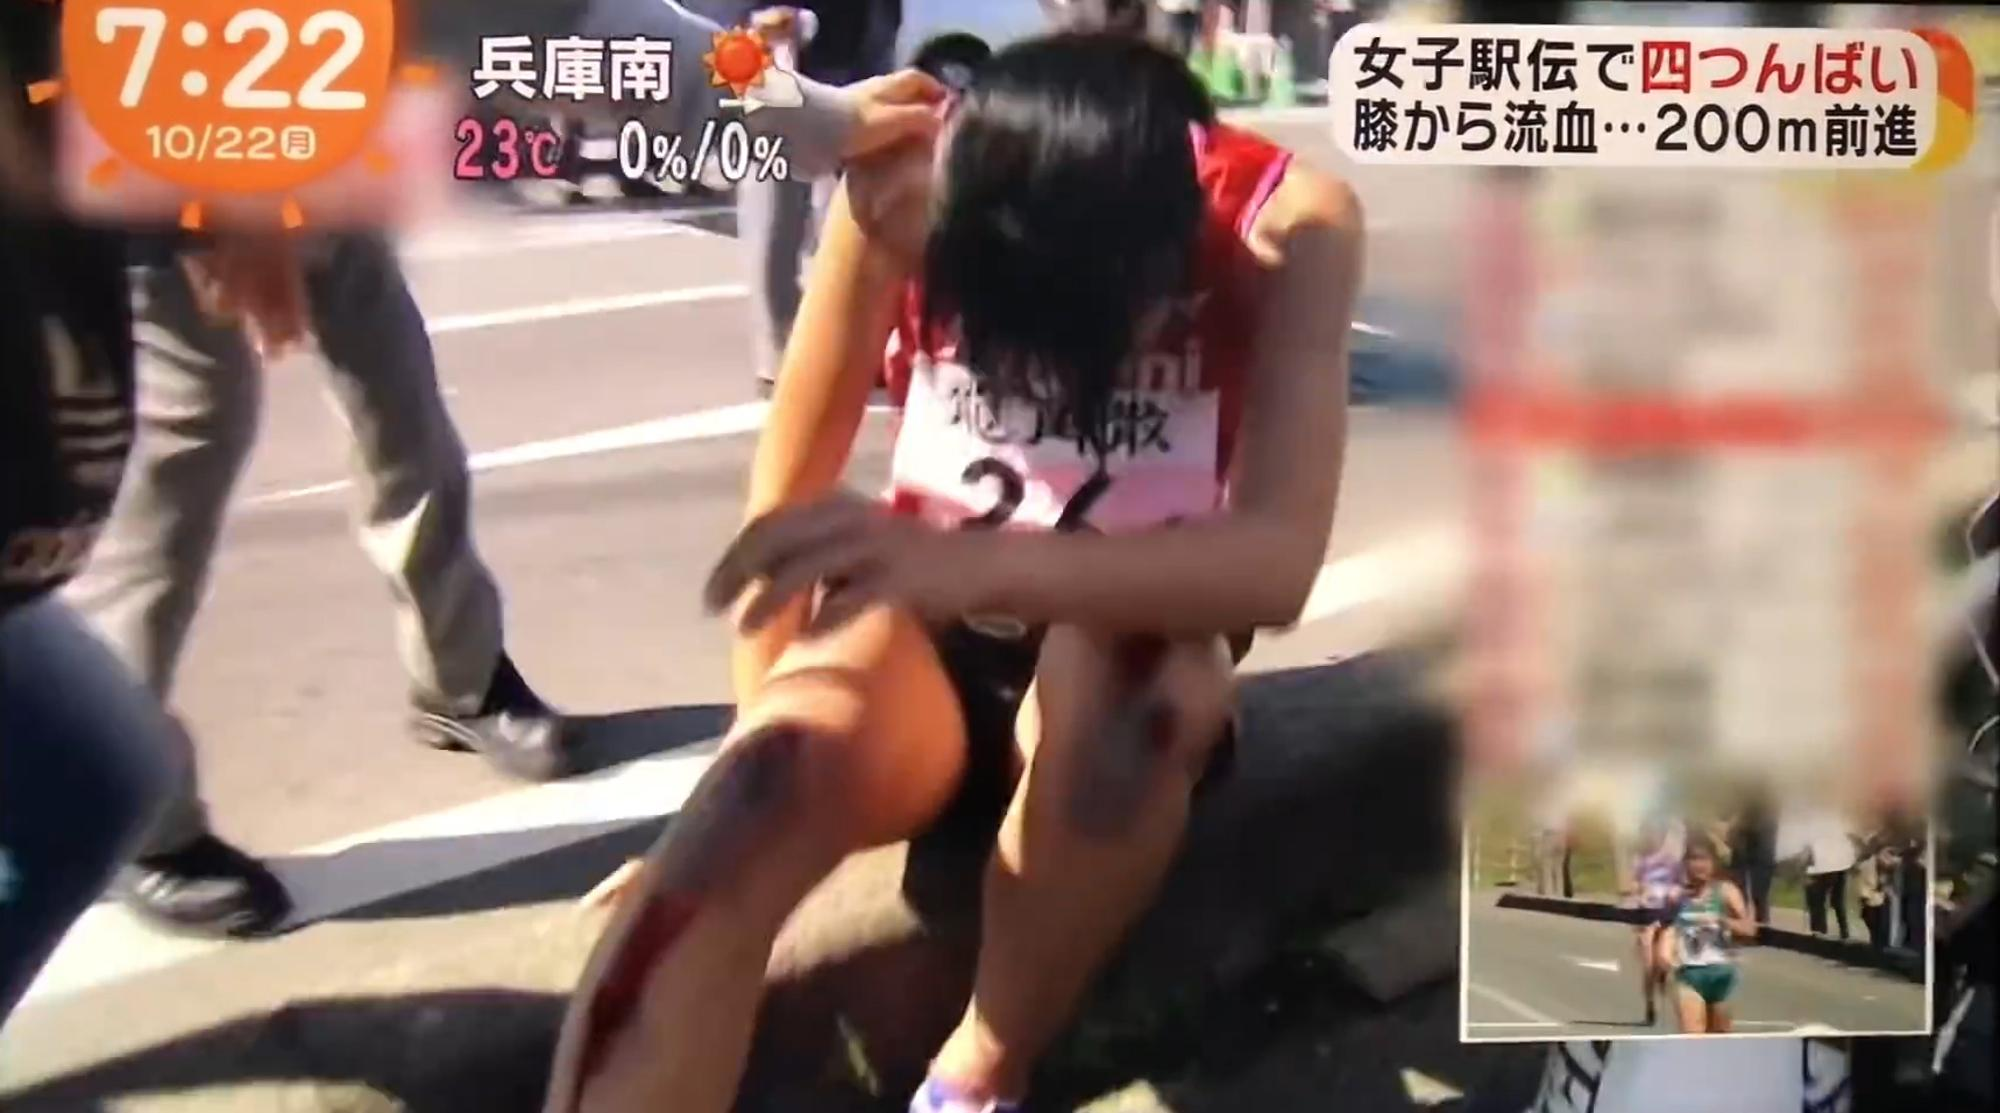 The runner finally finished her leg of the relay race in utter agony